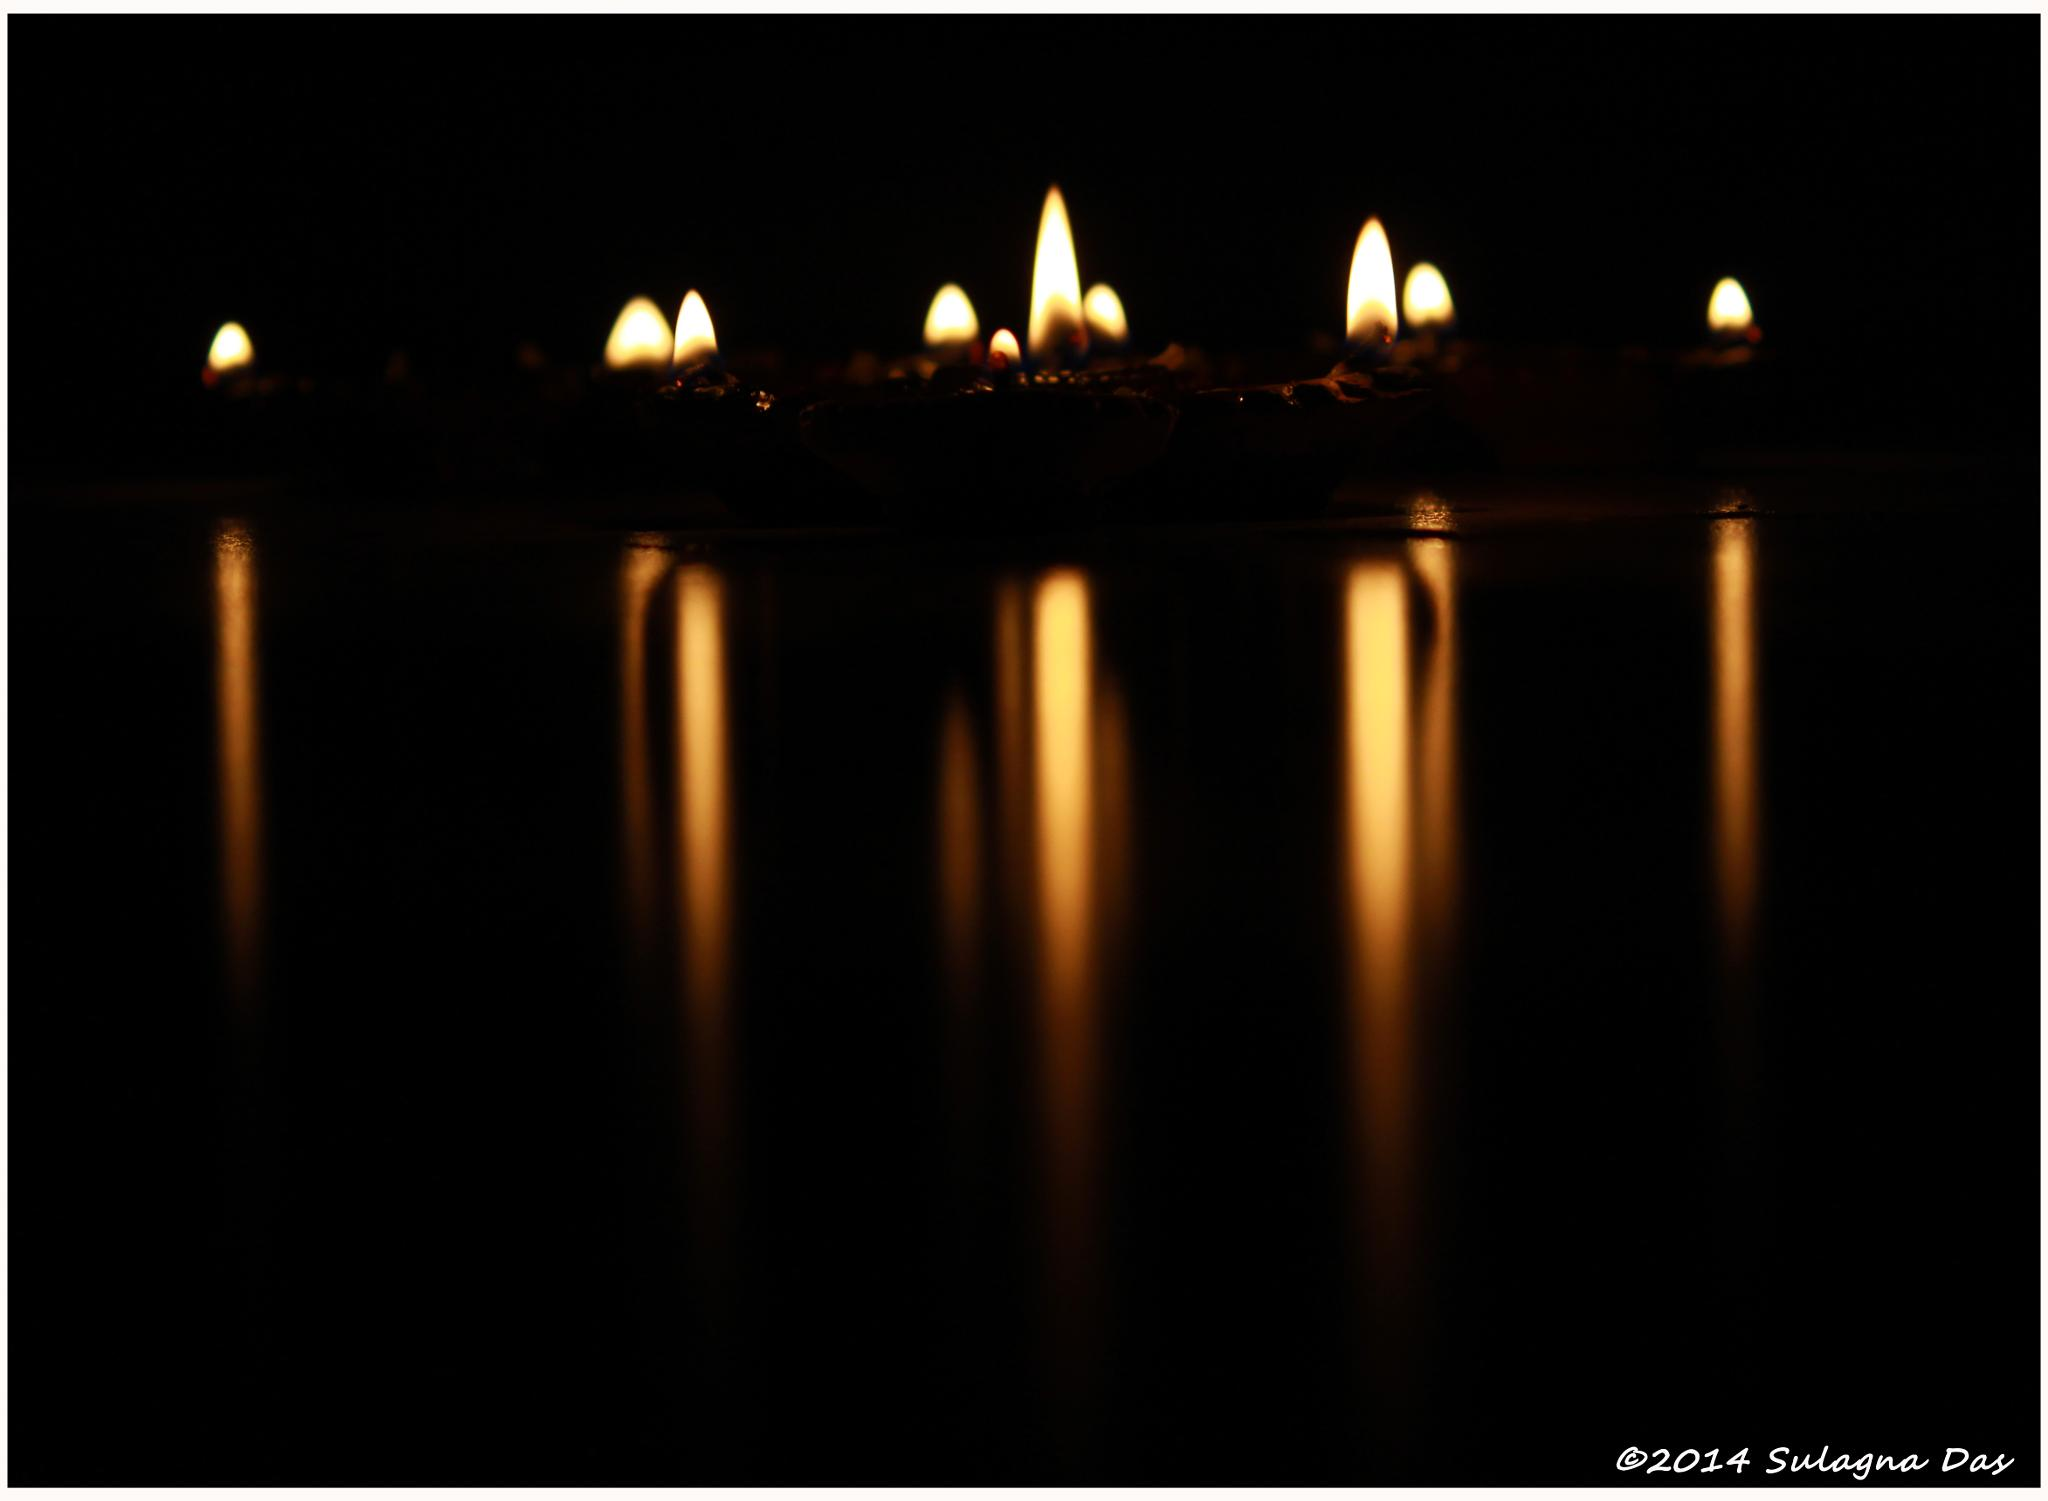 The Festival of Light - Diwali/ Worship of Goddess Kali by Sulagna D